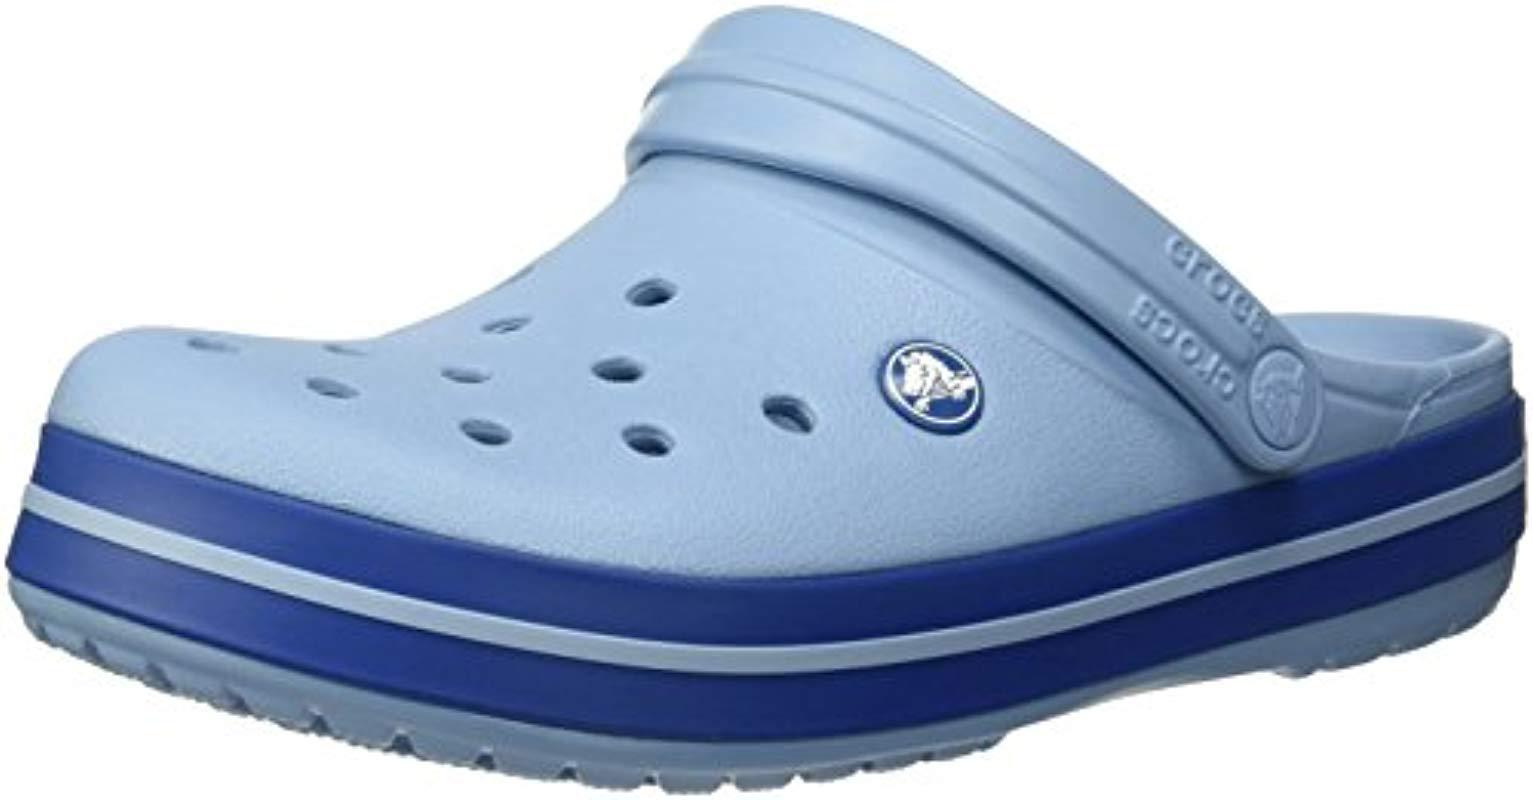 d73defb04 Lyst - Crocs™ Unisex Adults  Crocband U Clogs in Blue for Men